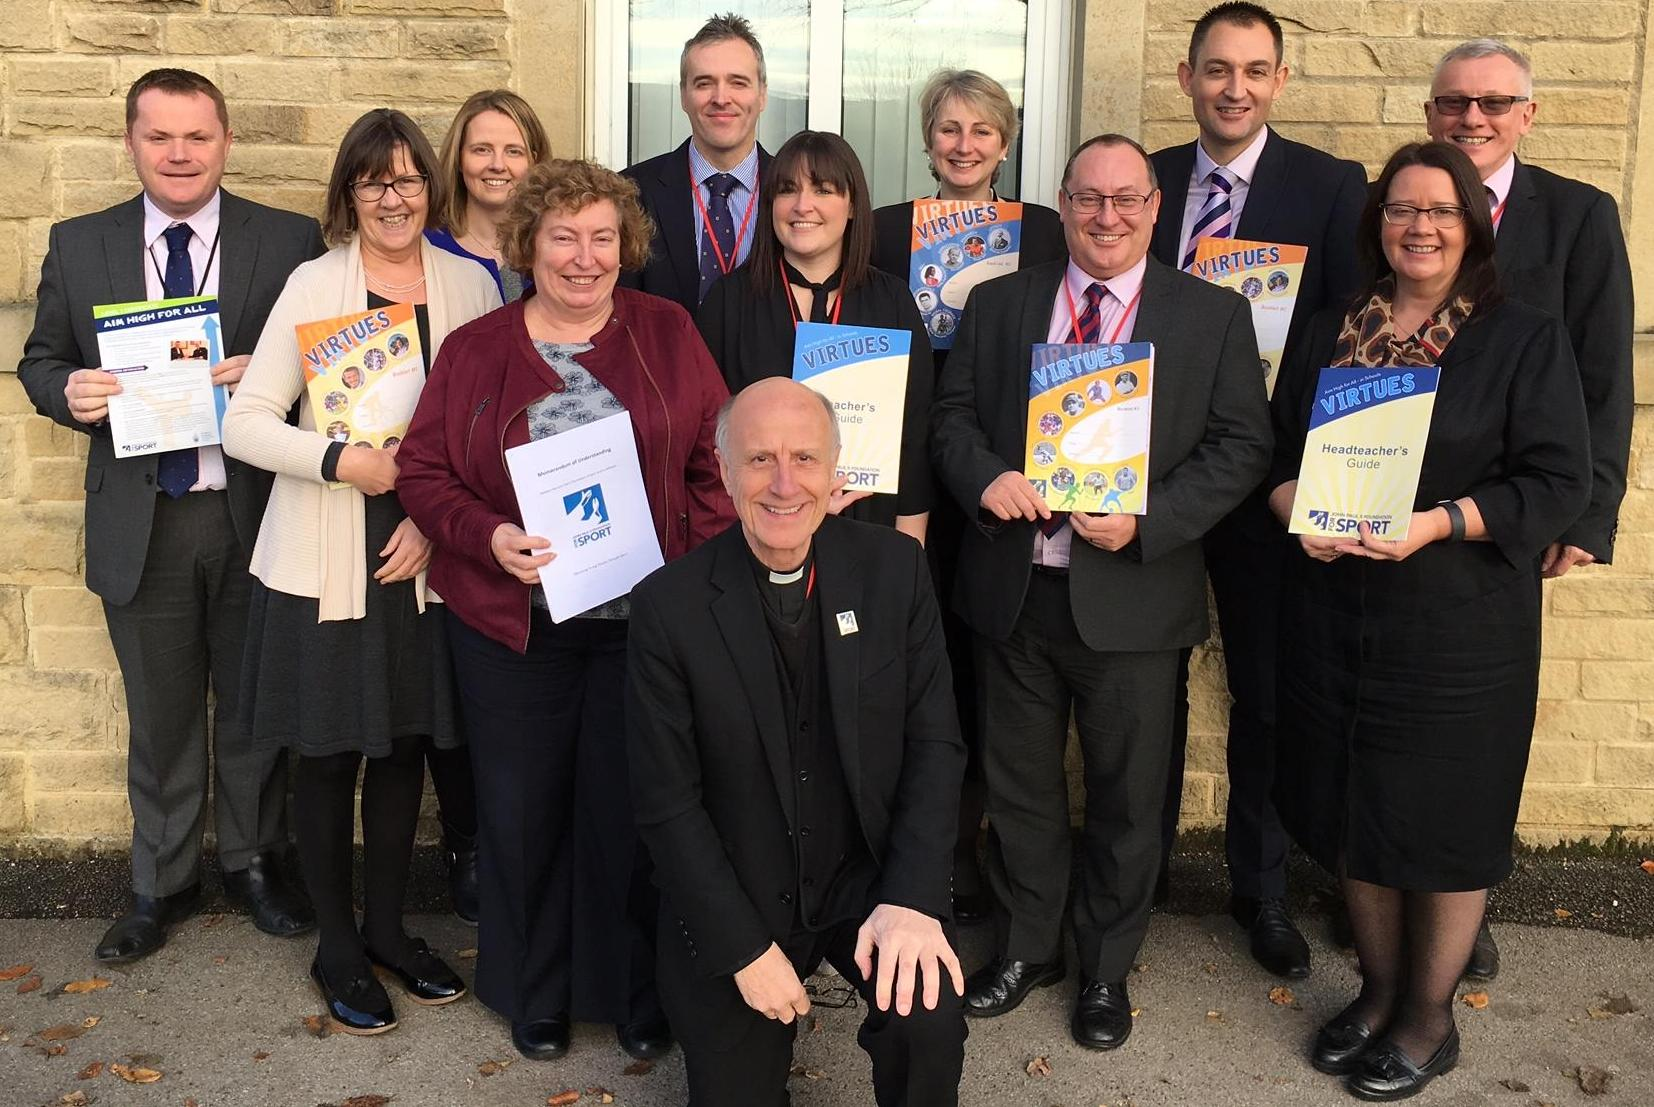 AHFA programme was unveiled at St Stephen's Primary School, Skipton, Yorkshire